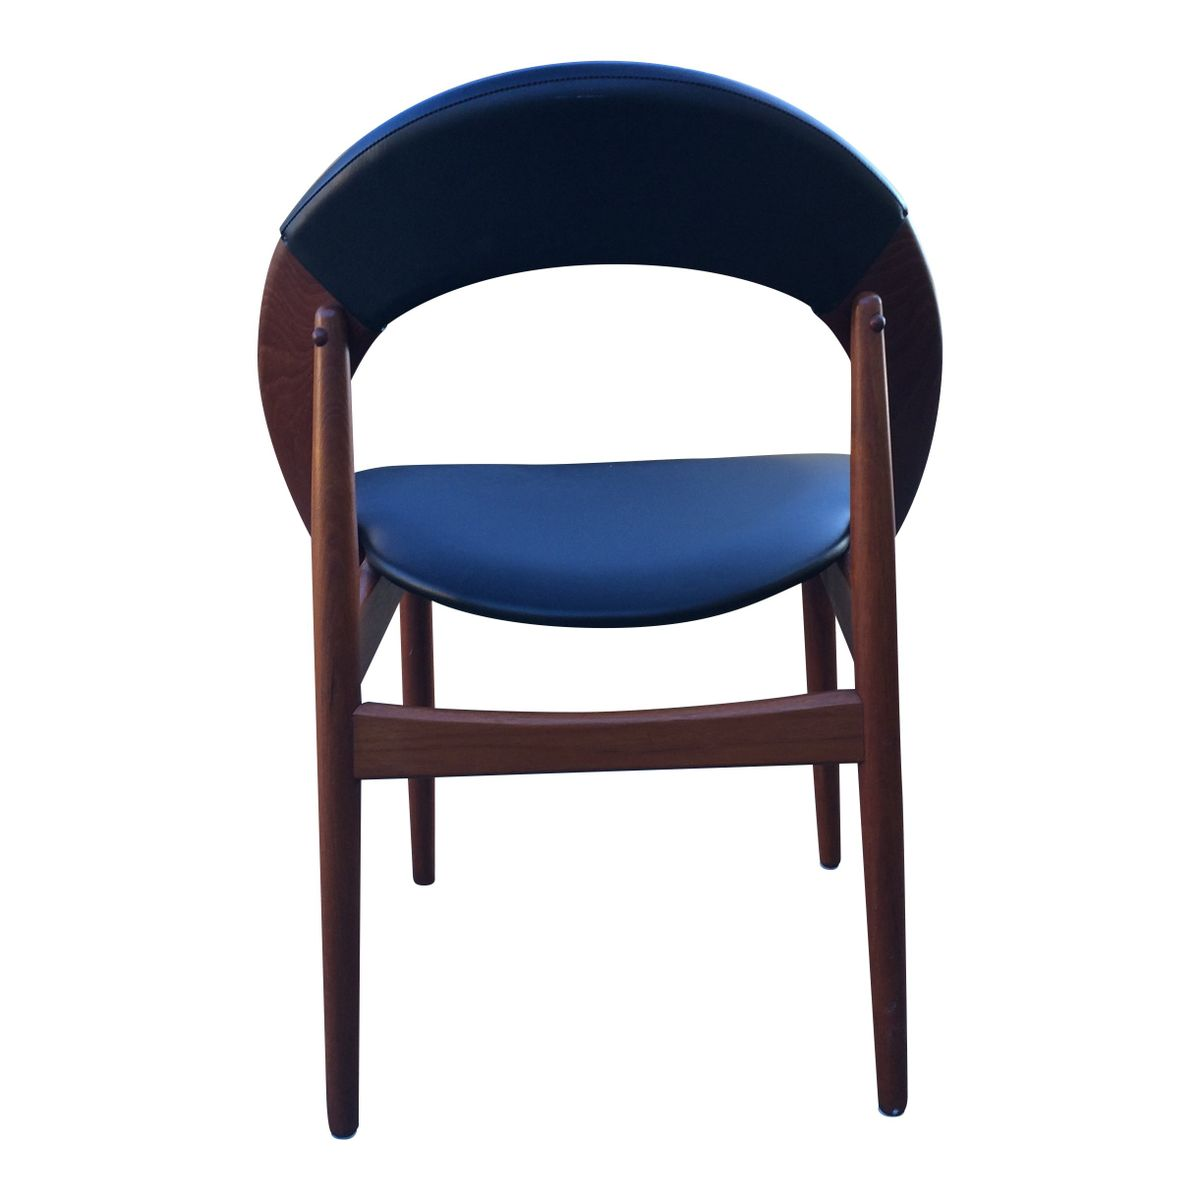 Danish Teak Chair by A Hovman Olsen 1960s for sale at Pamono